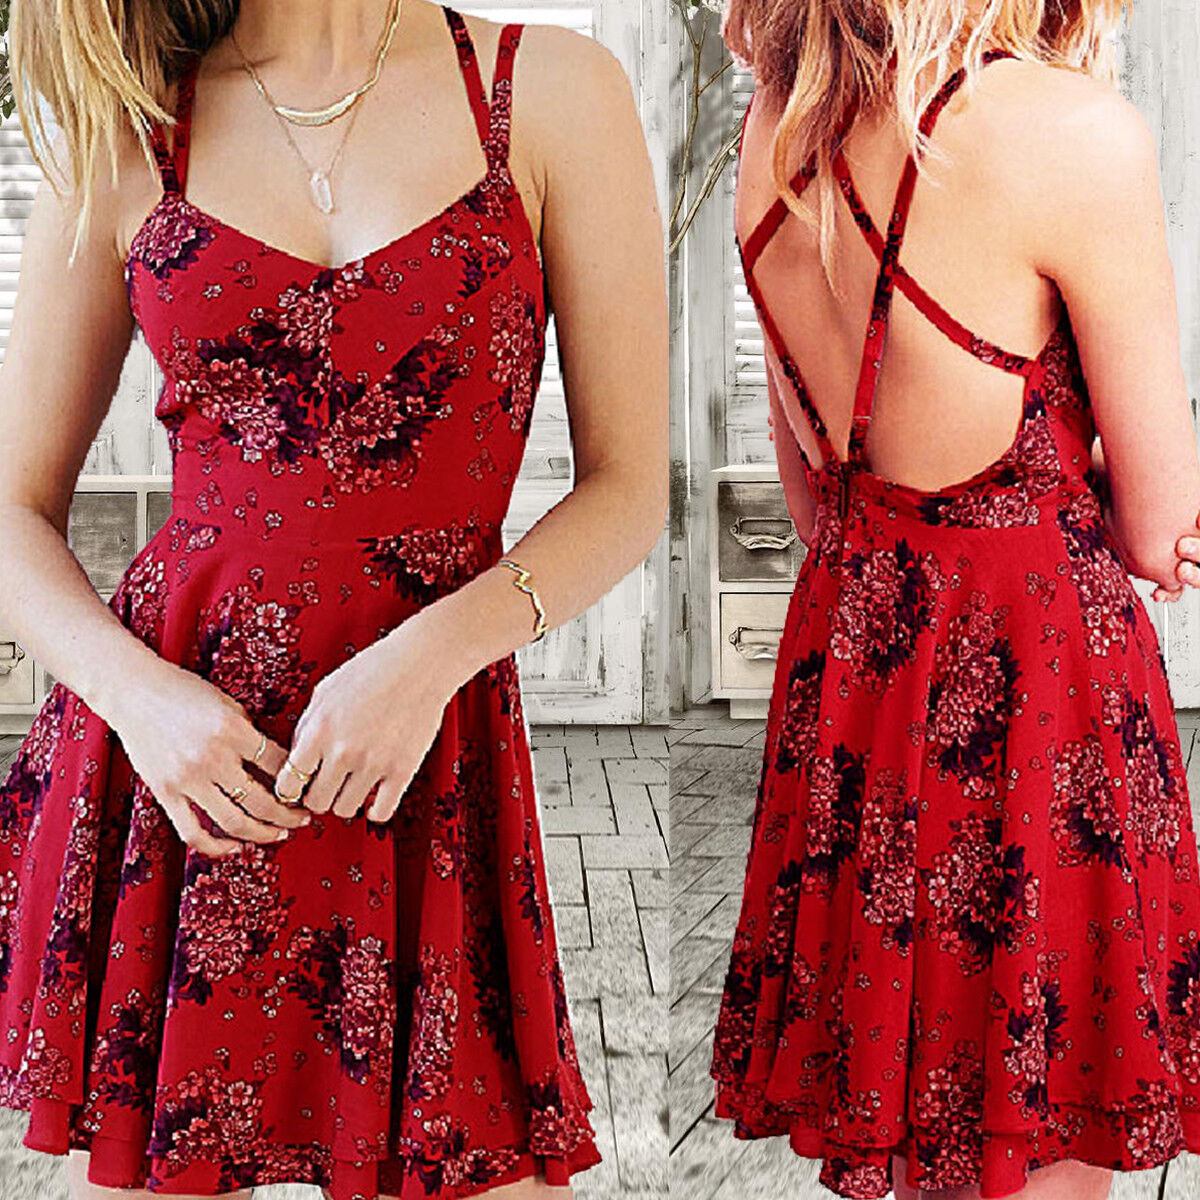 New Red Women Backless Beach Holiday Boho Strapless Print Chic Short Dress US Clothing, Shoes & Accessories